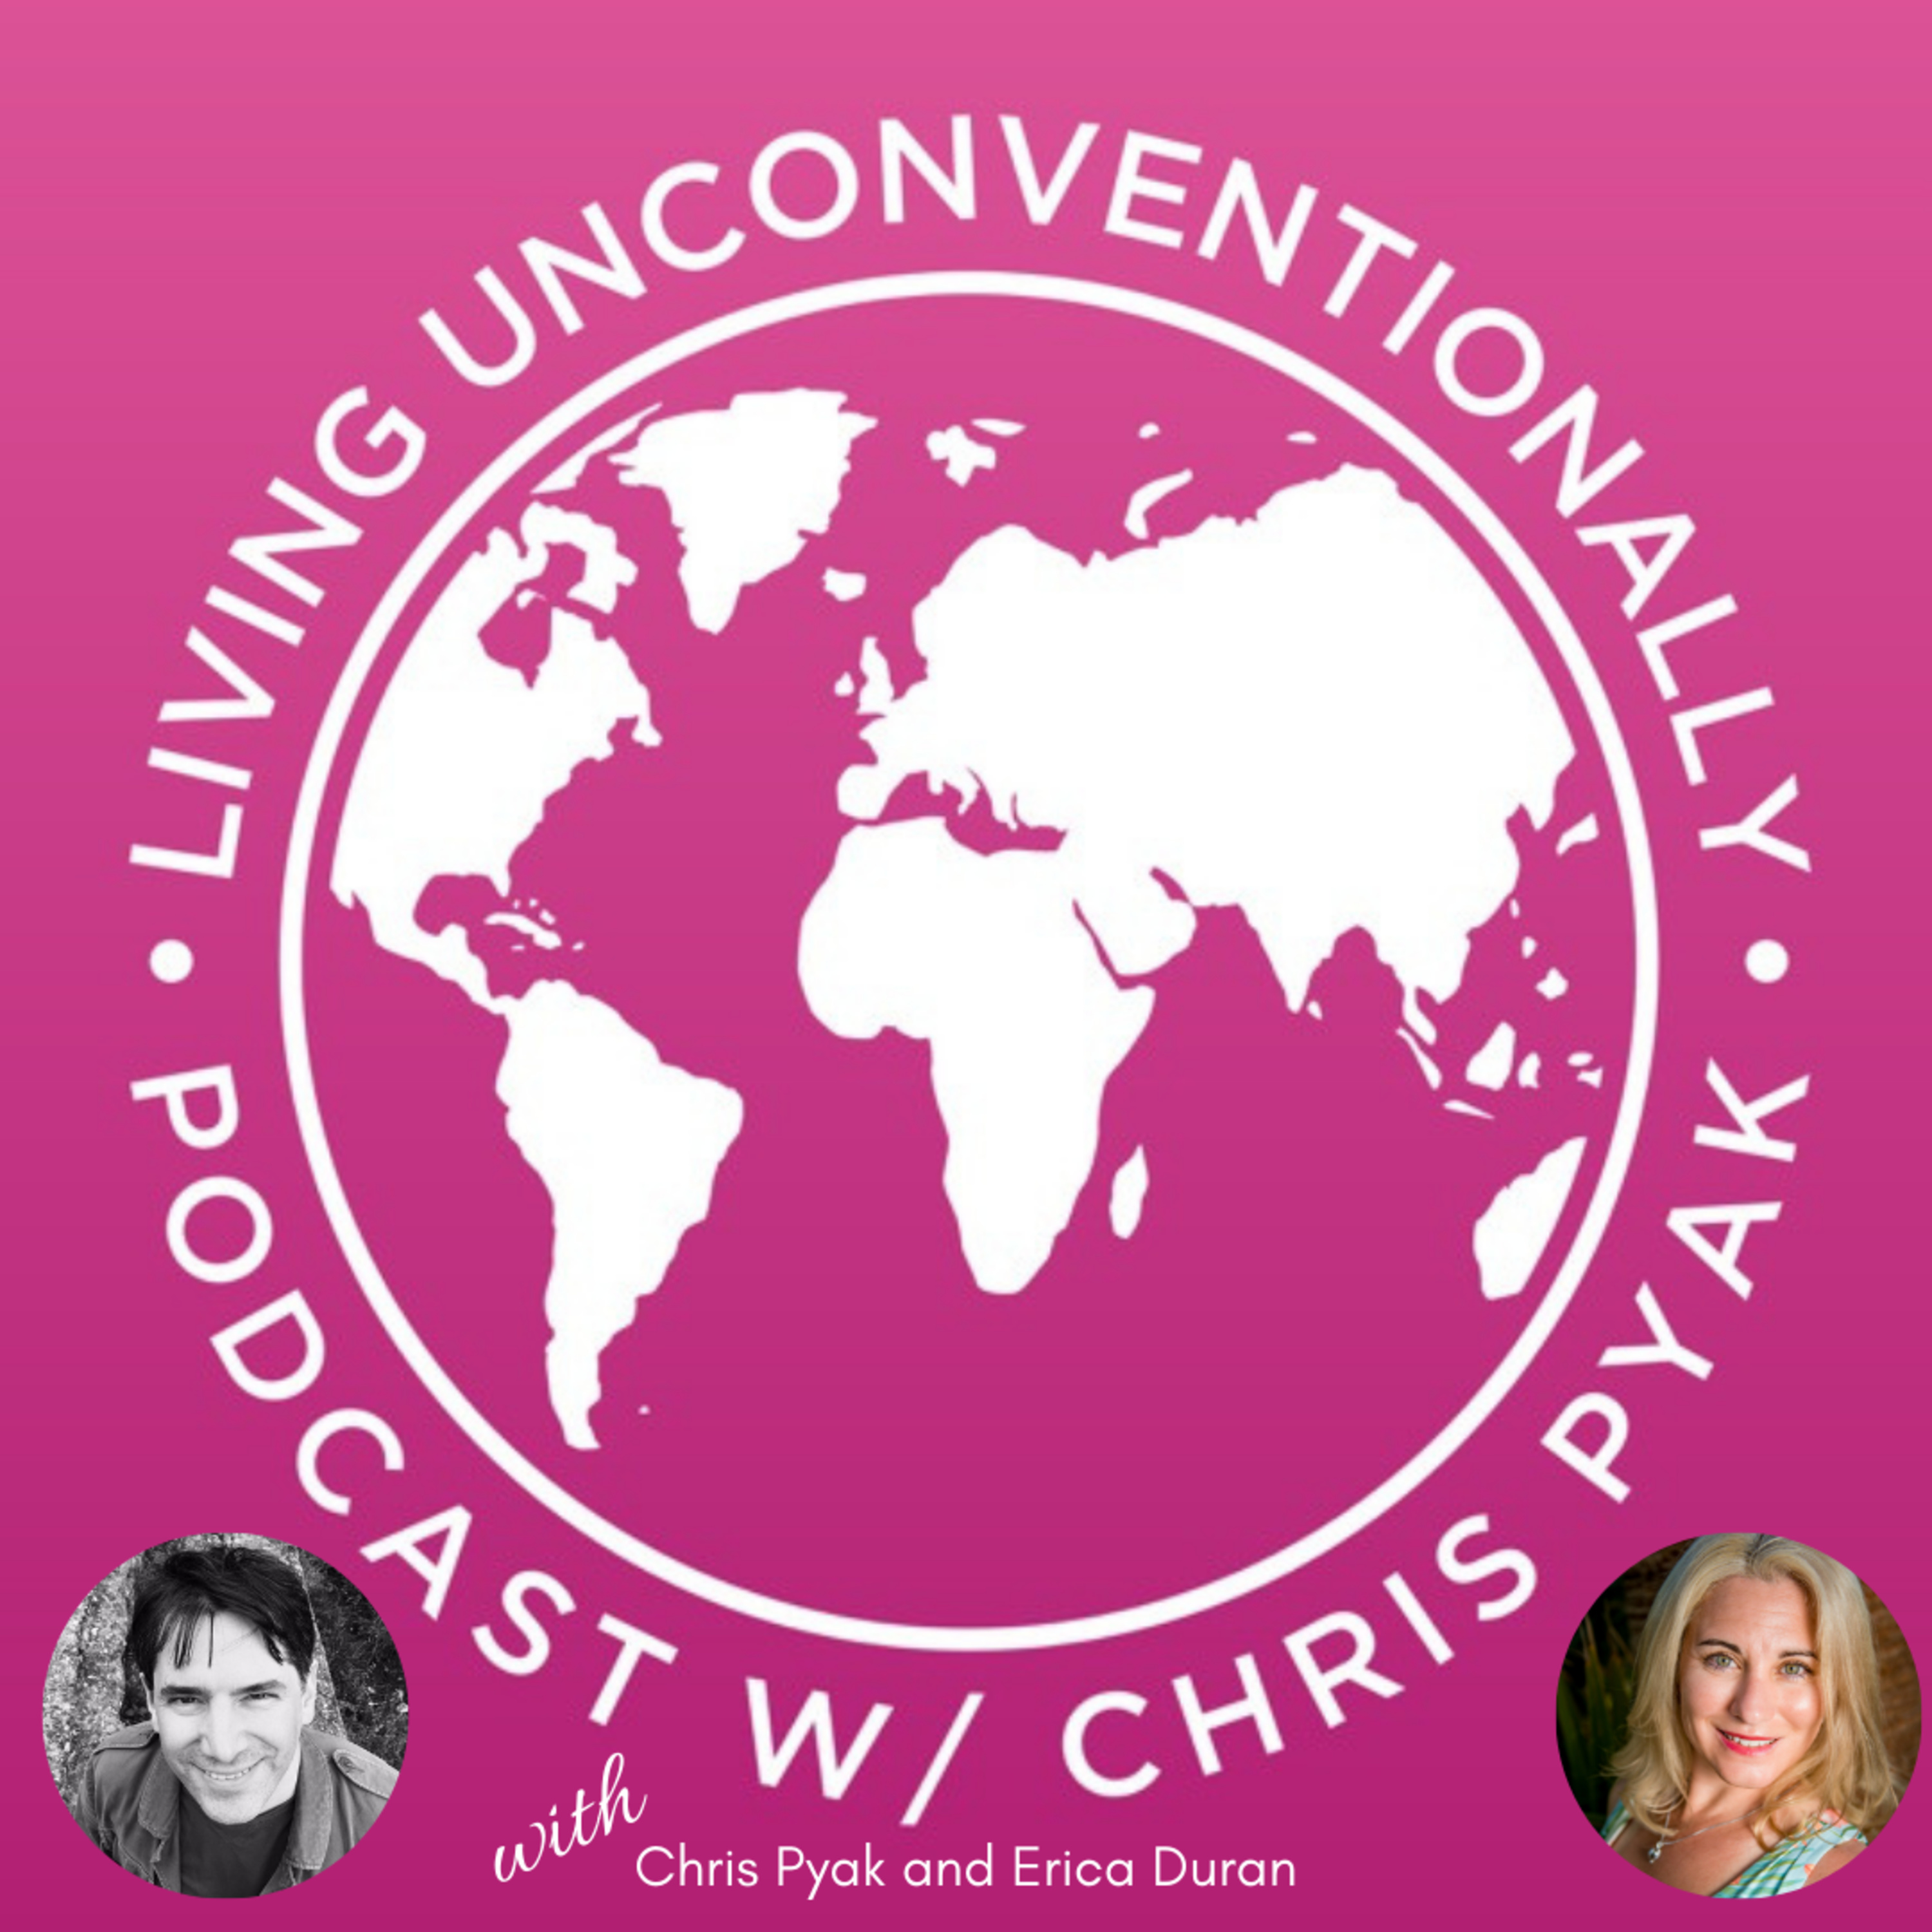 [Interview Series Episode 178] Erica Duran on the Living Unconventionally Podcast